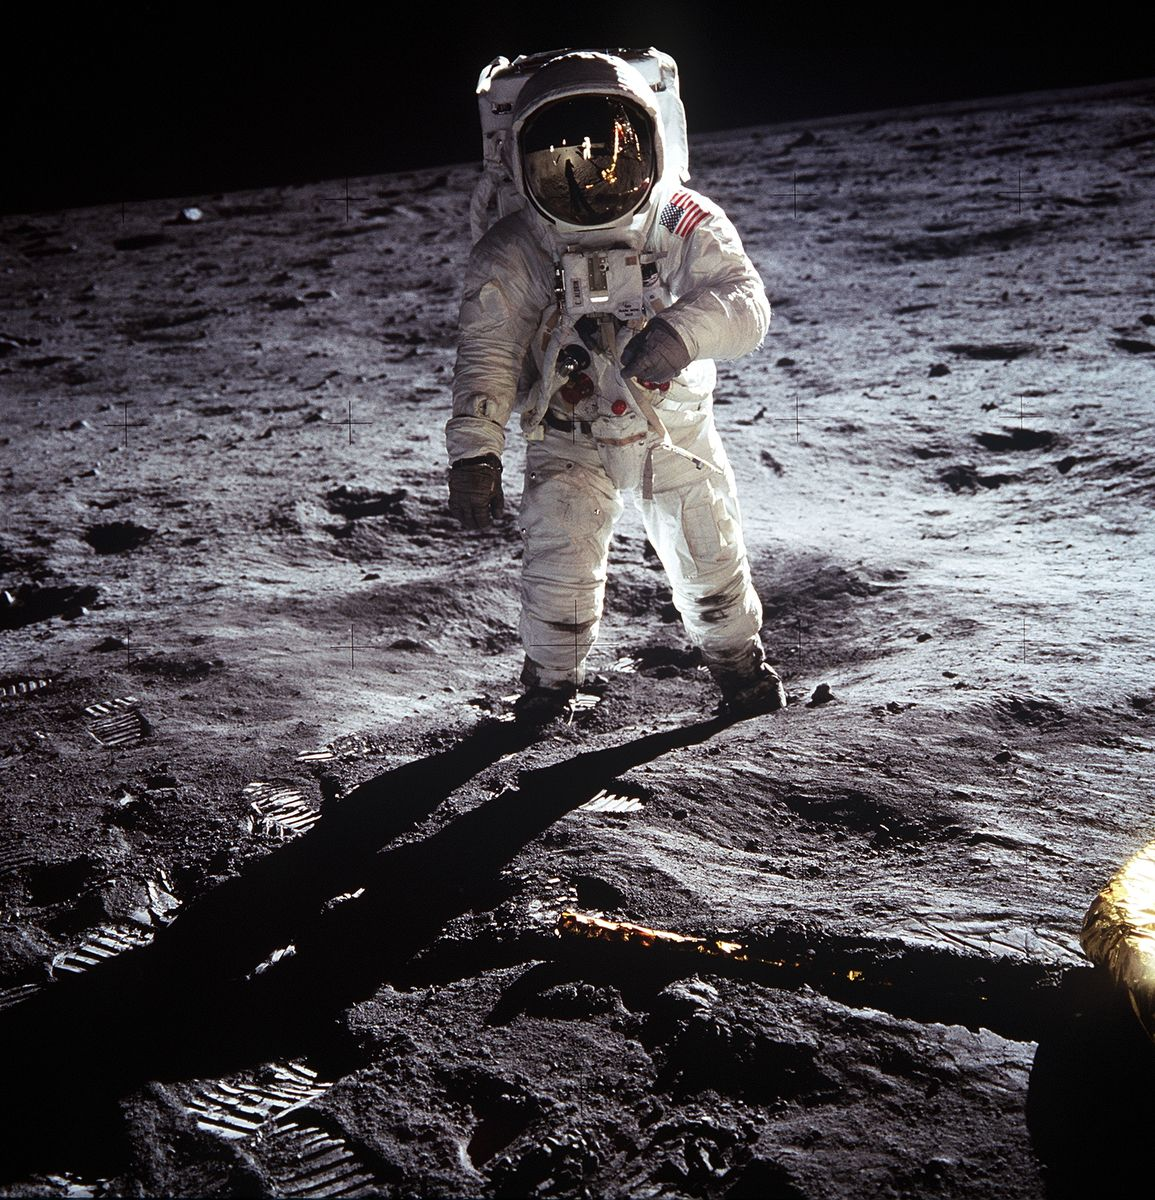 376713 05: (FILE PHOTO) Astronaut Edwin E. Aldrin Jr. walks near the Lunar Module during the Apollo 11 extravehicular activity July 20, 1969 on the Moon. The 30th anniversary of the Apollo 11 Moon mission is celebrated July 20, 1999. (Photo by NASA/Newsmakers)